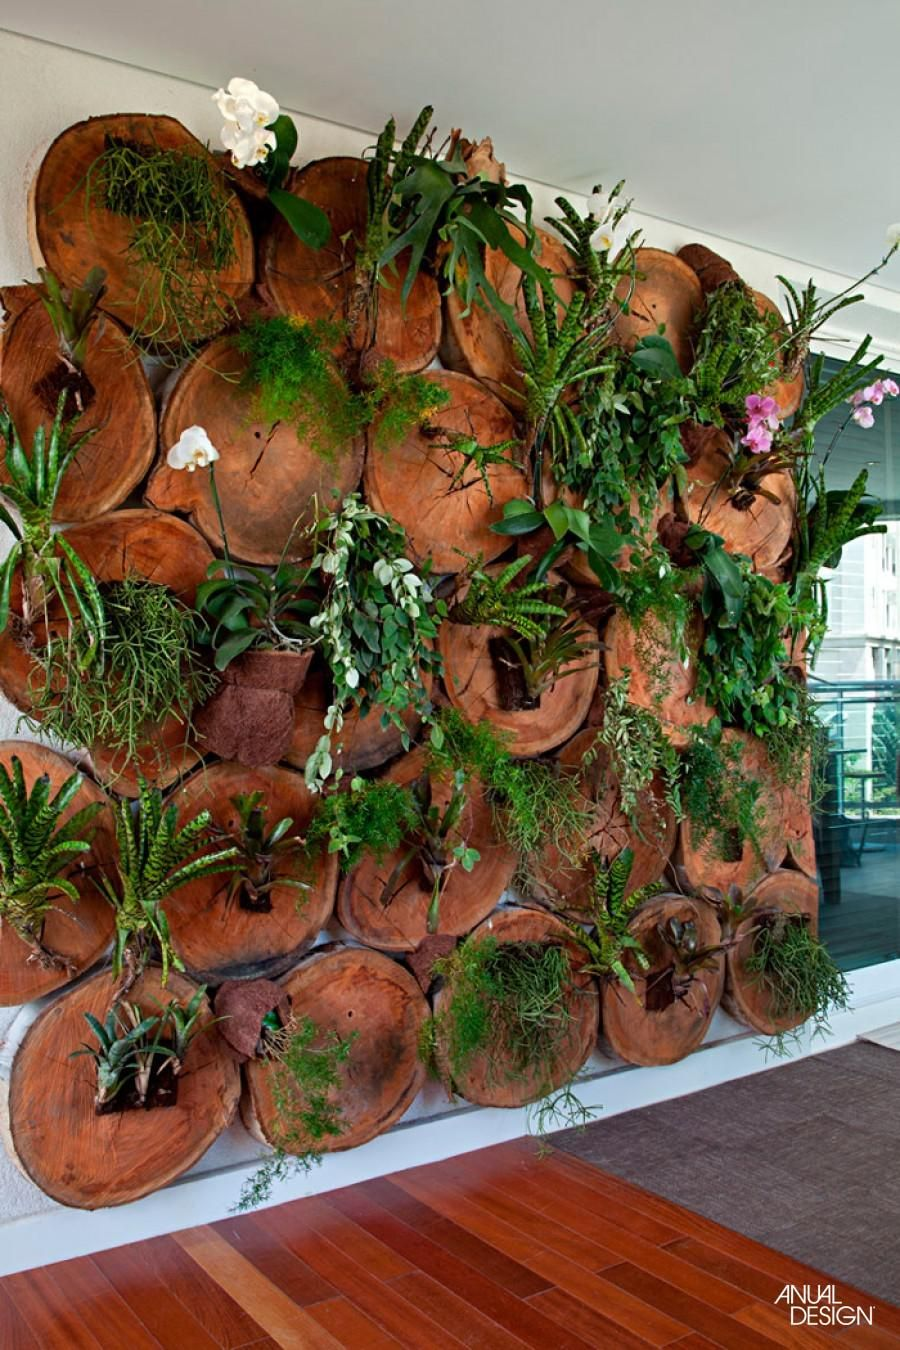 50 Vertical Garden Ideas That Will Change the Way You Think About ...